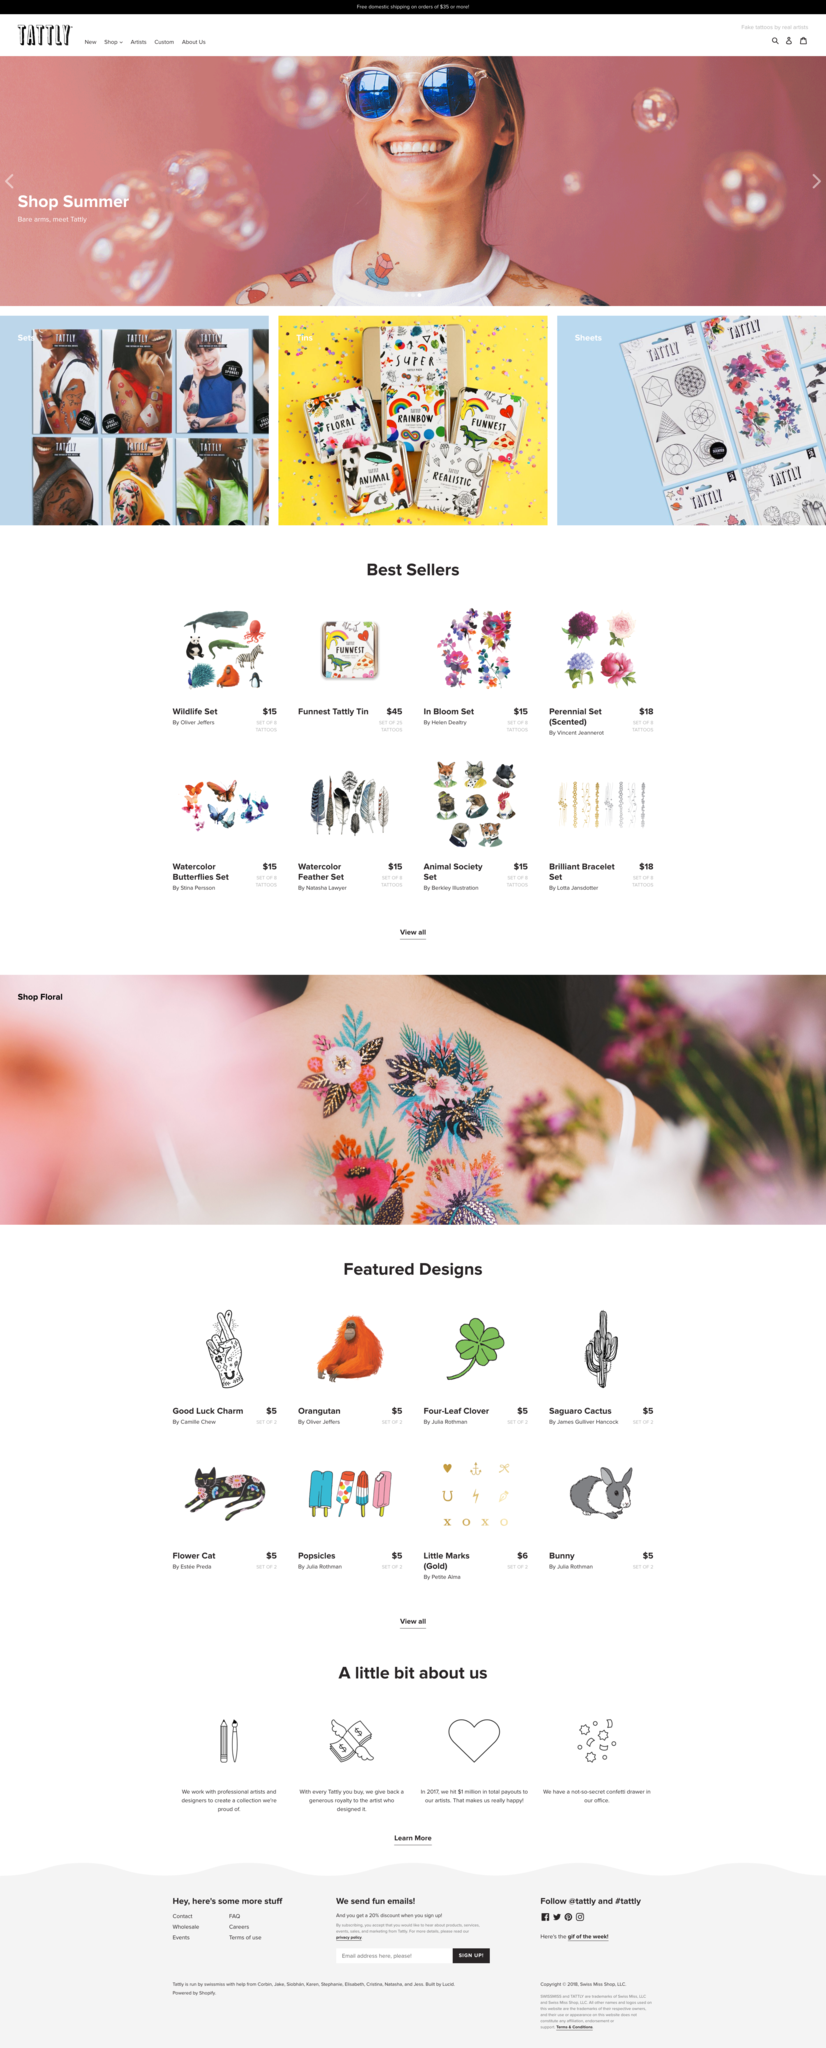 Image of Tattly's website